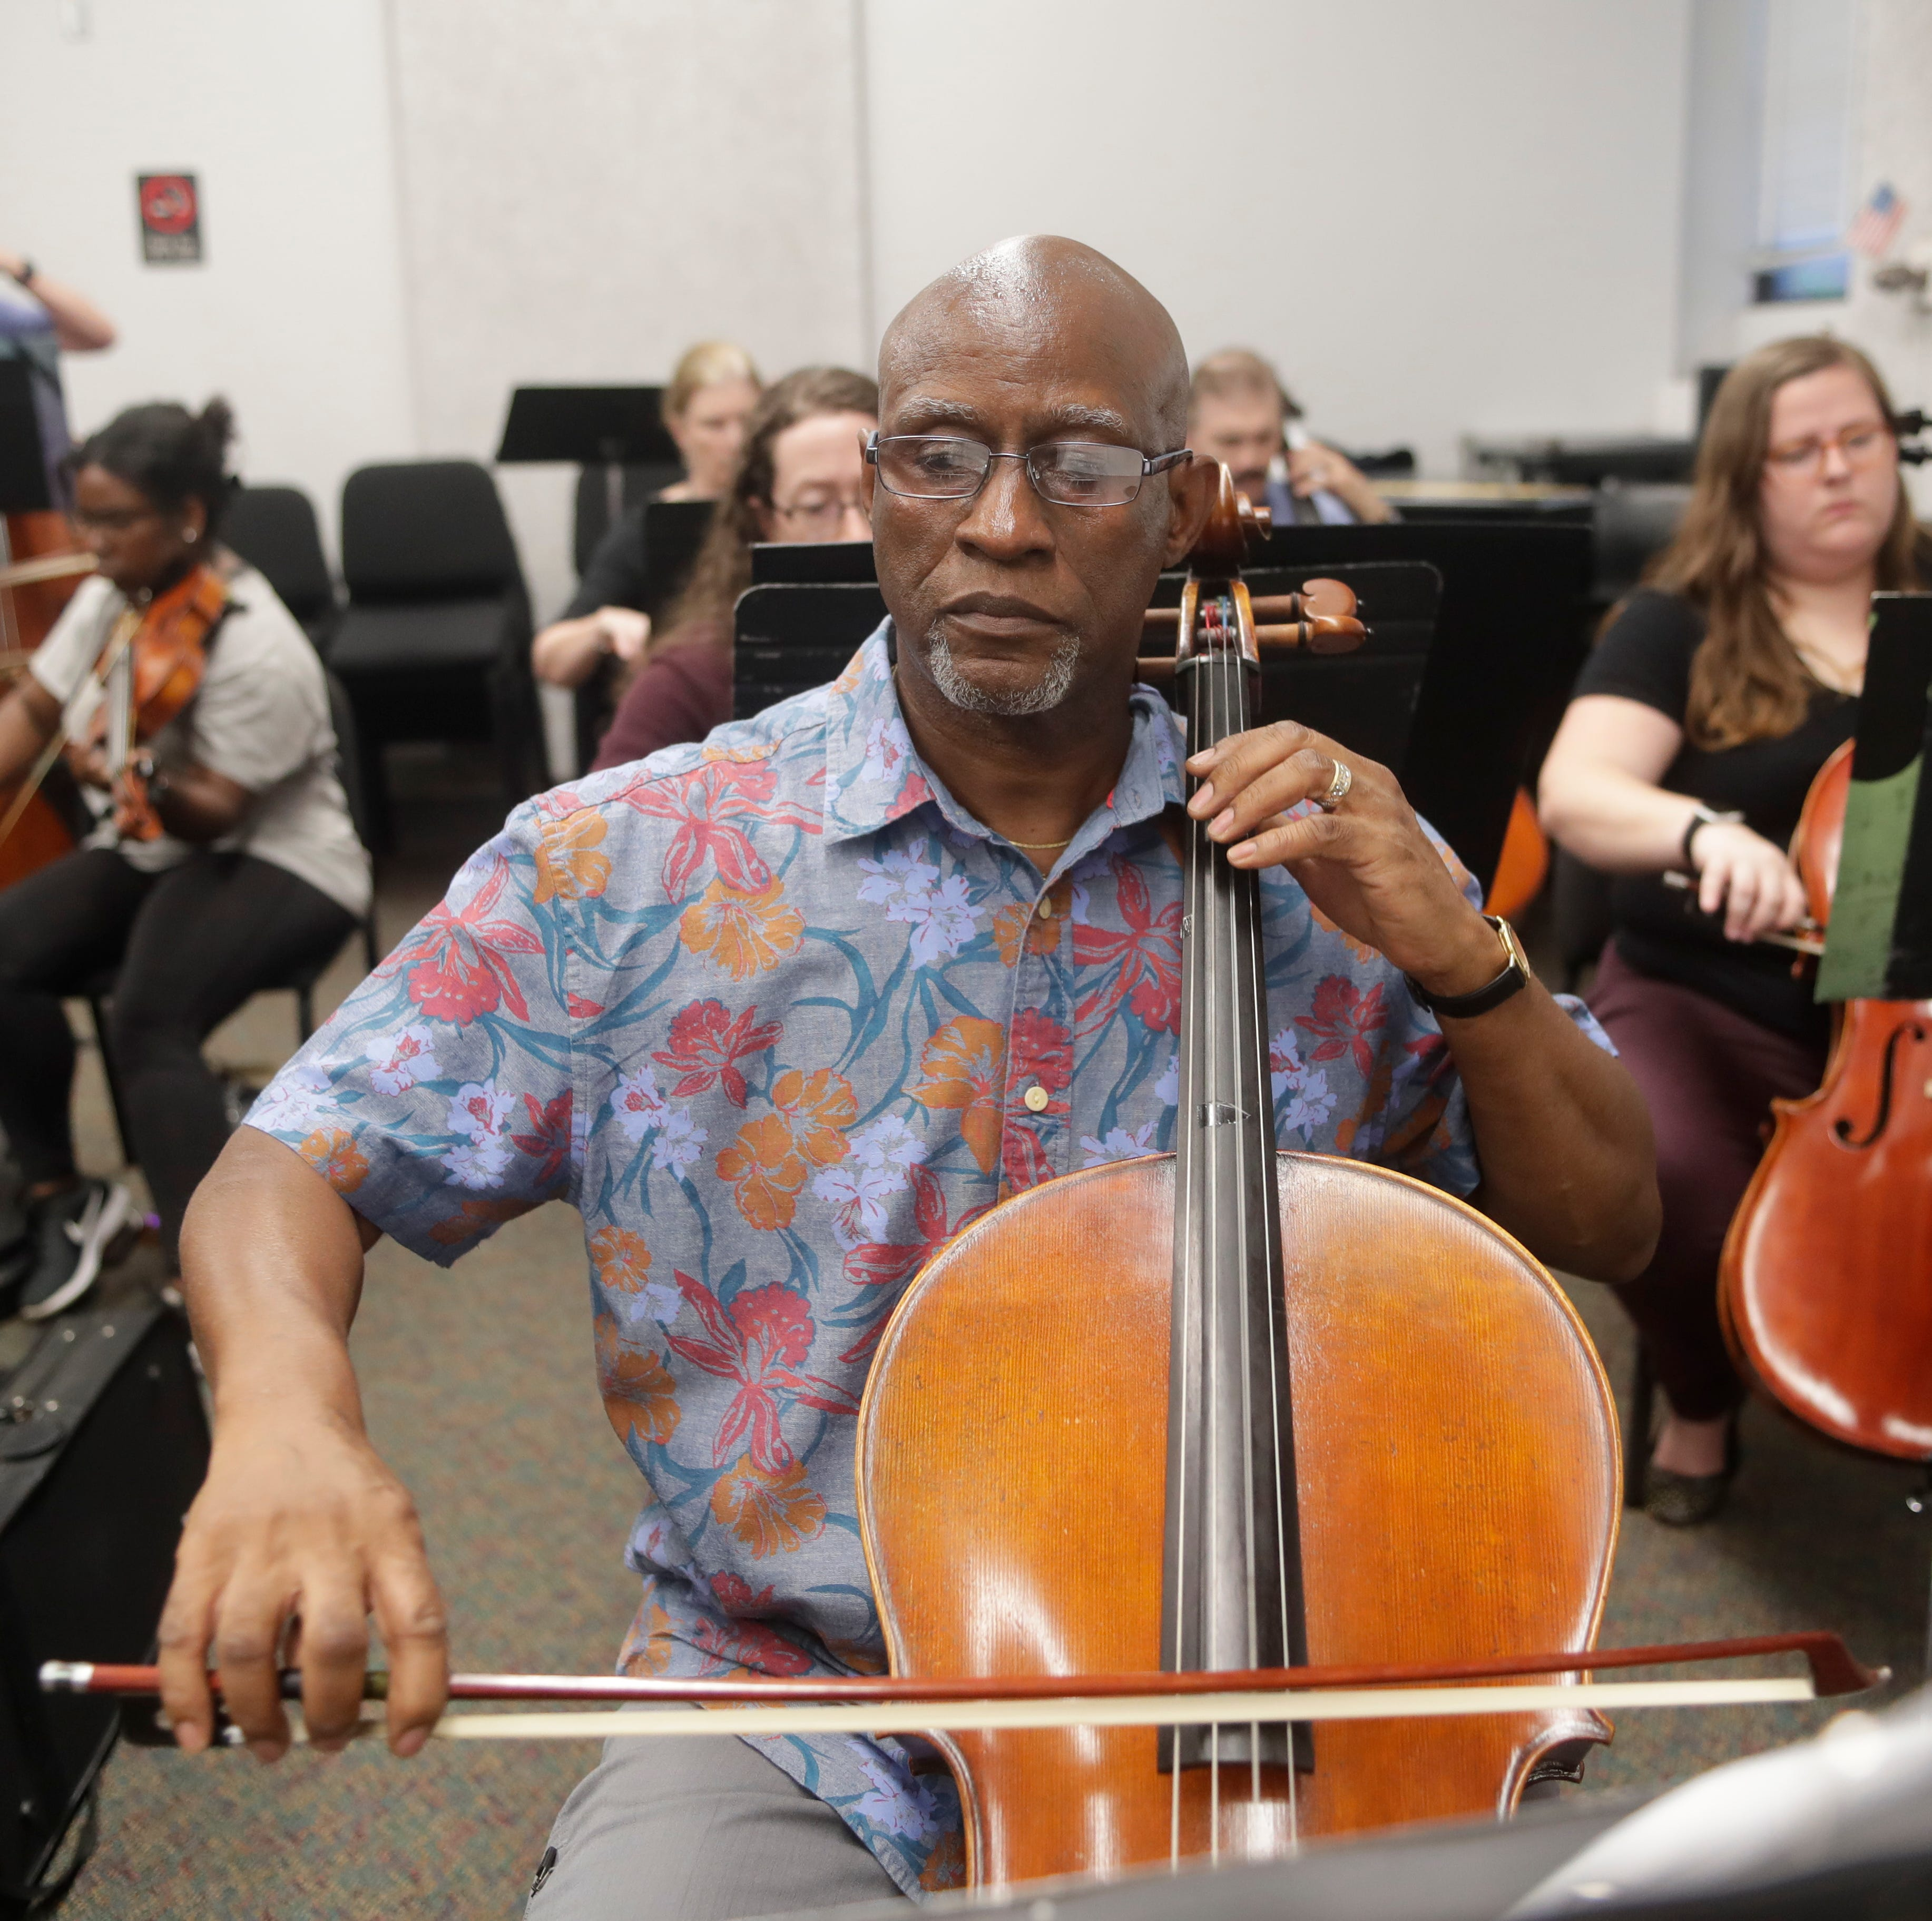 It's 25 years and counting for the Big Bend Community Orchestra